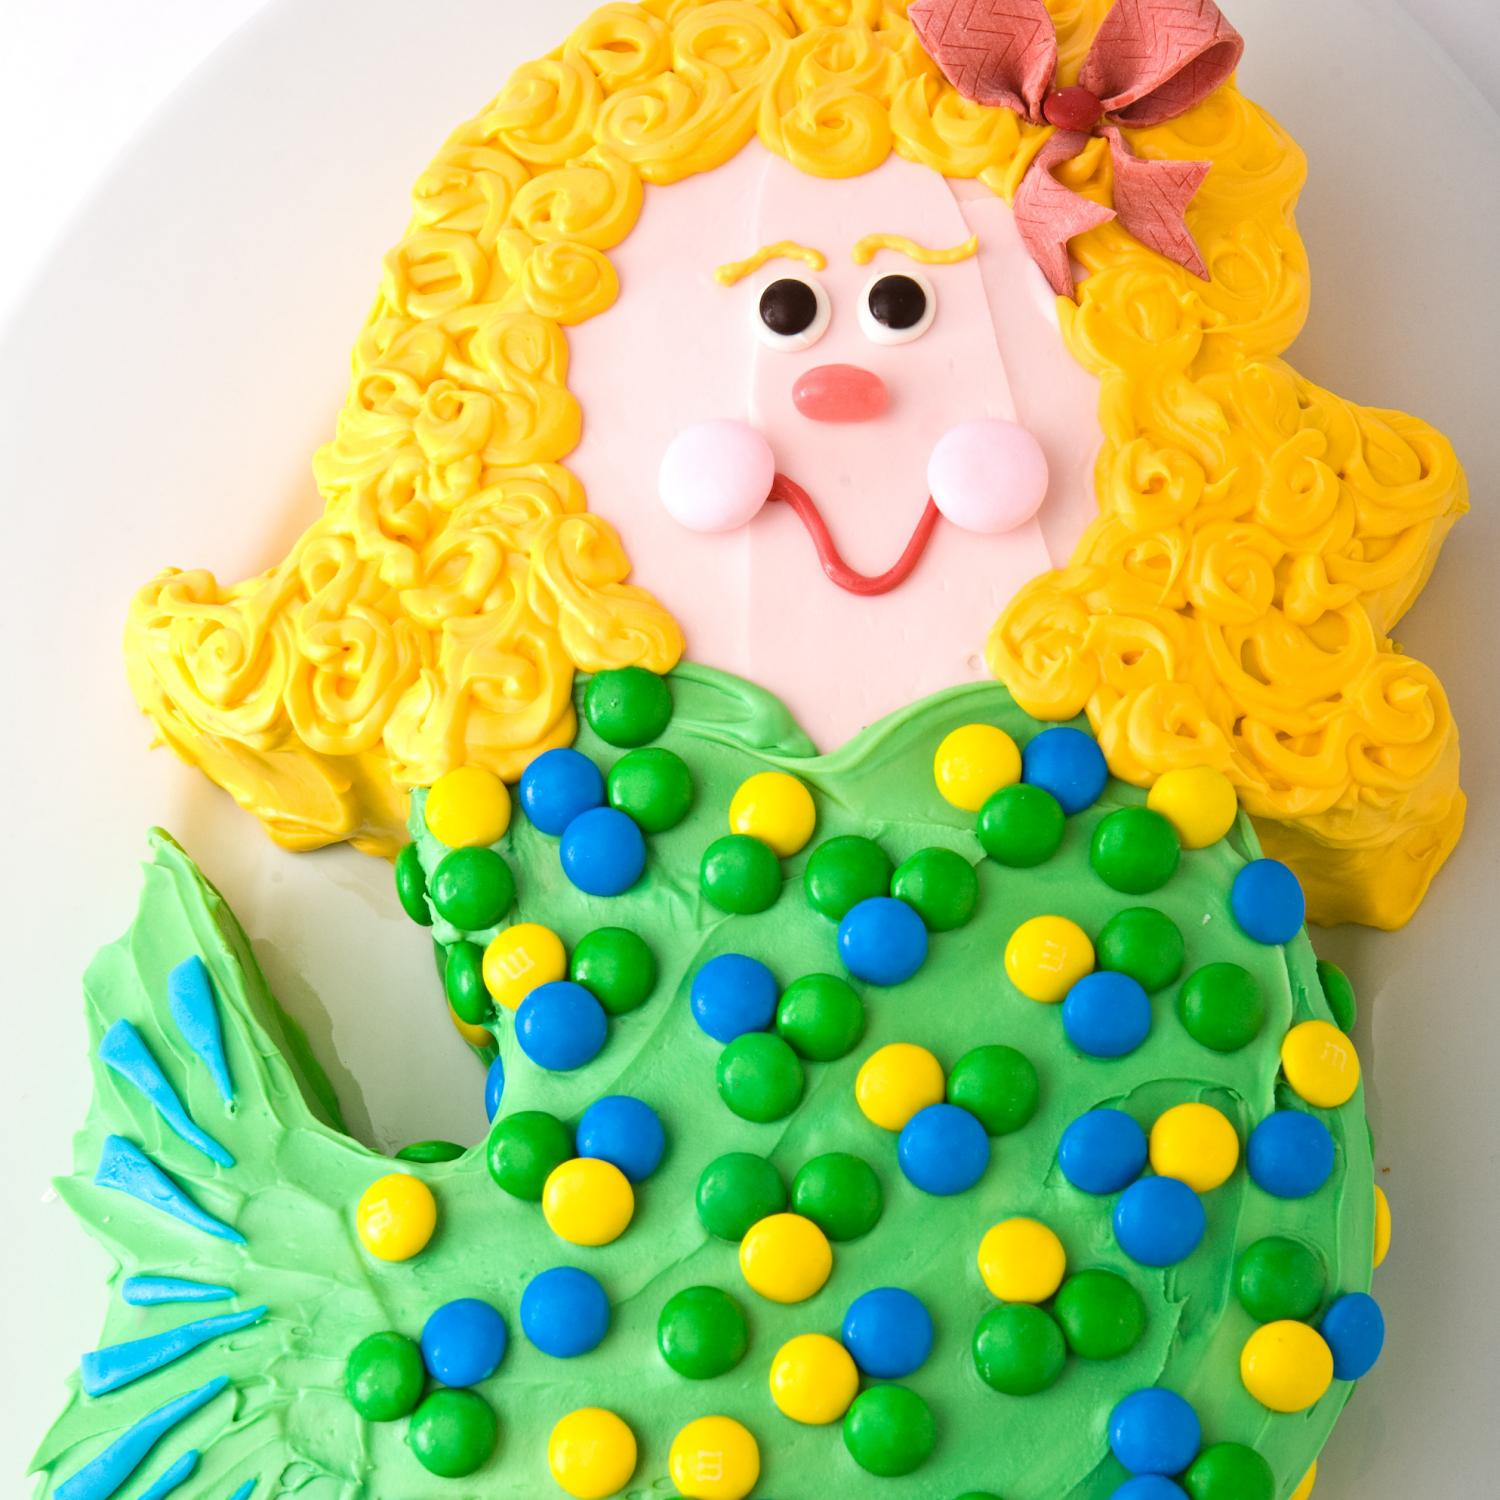 Mermaid Birthday Cake Design Parenting